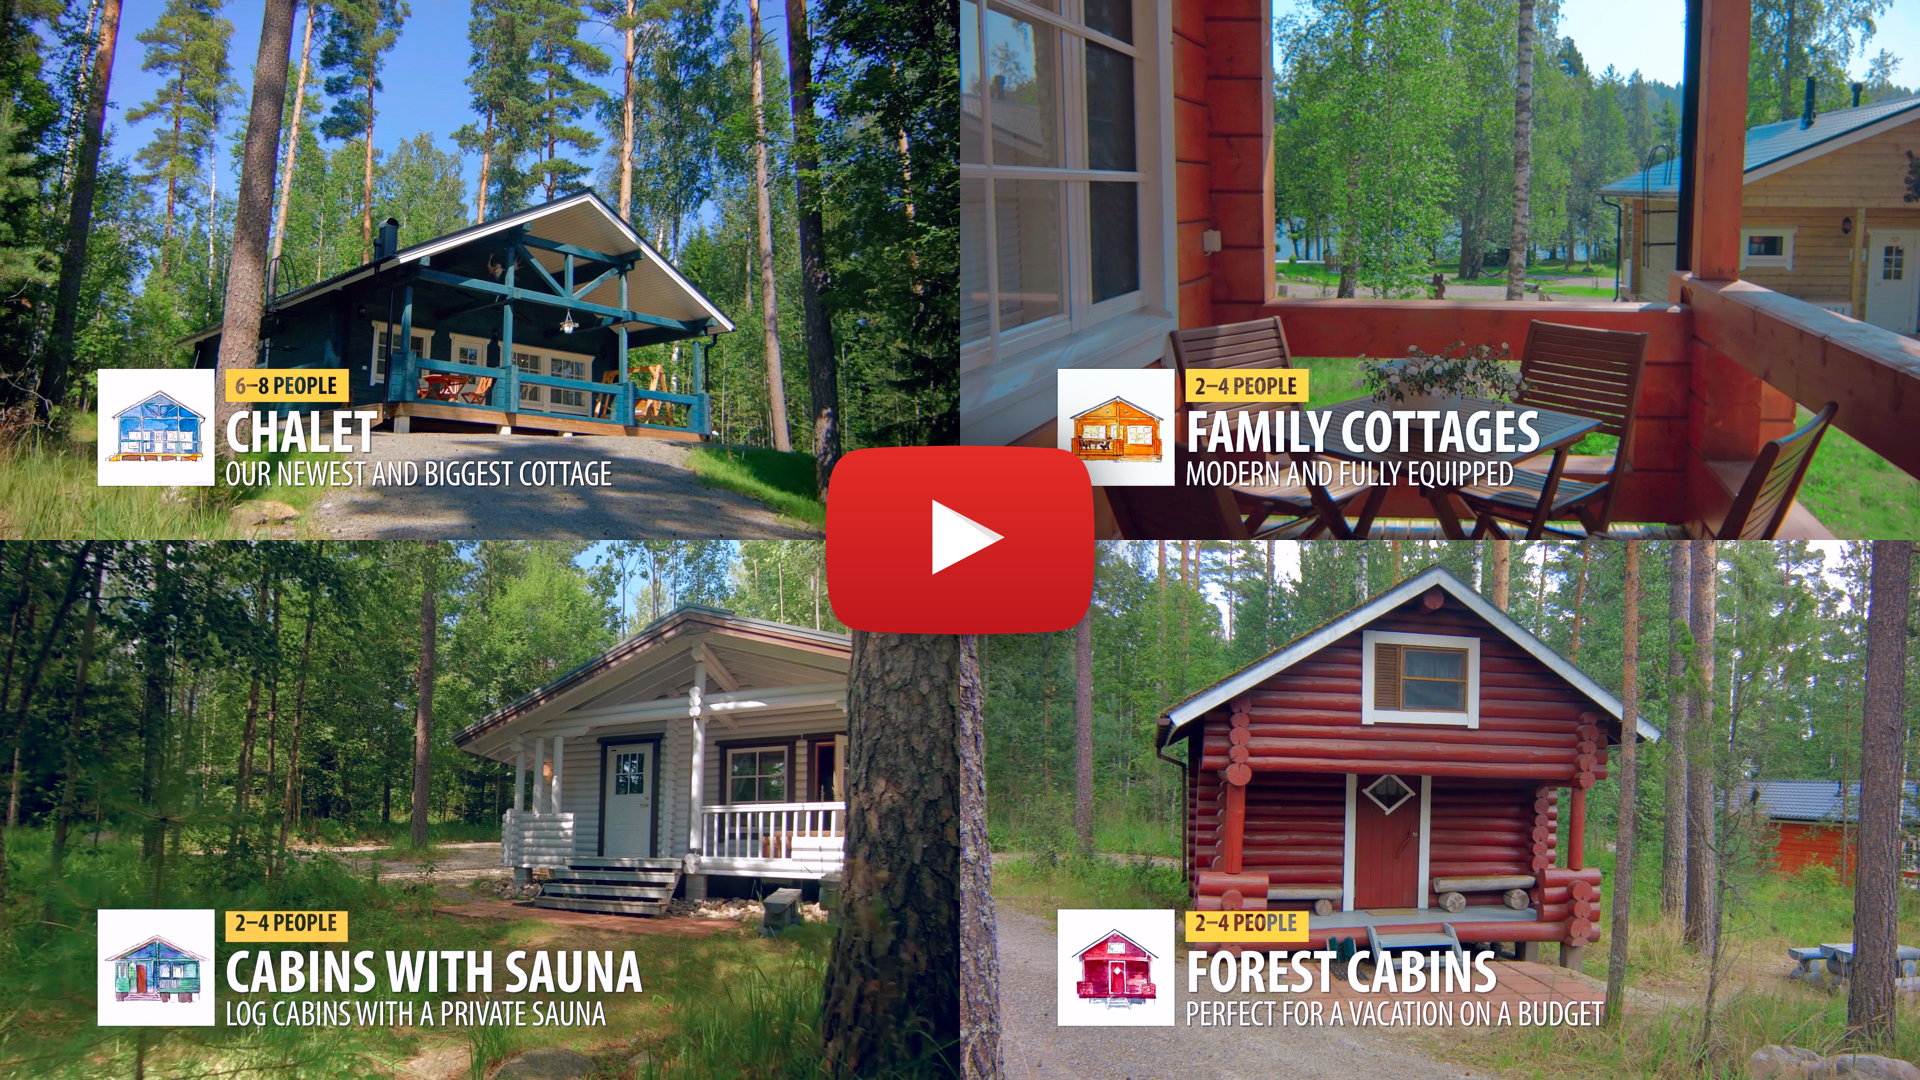 Check out a video about our cottages.